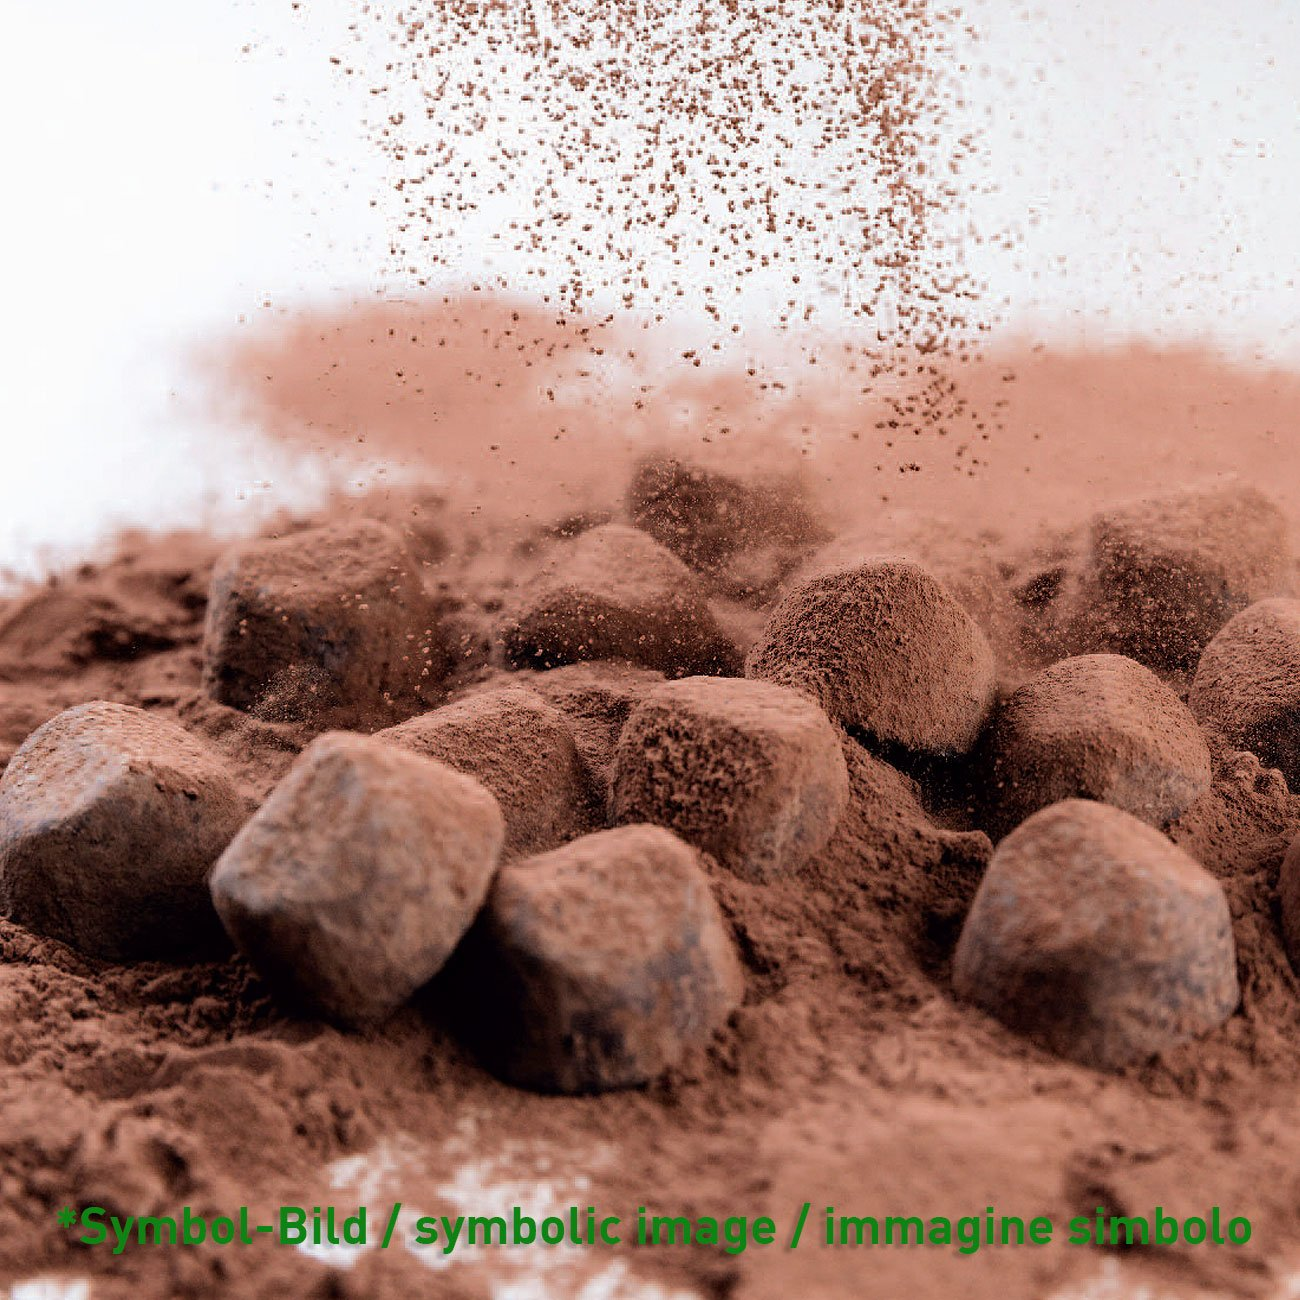 cocoa powder Lima 10/12 (cacao in polvere) - paket 2 kg